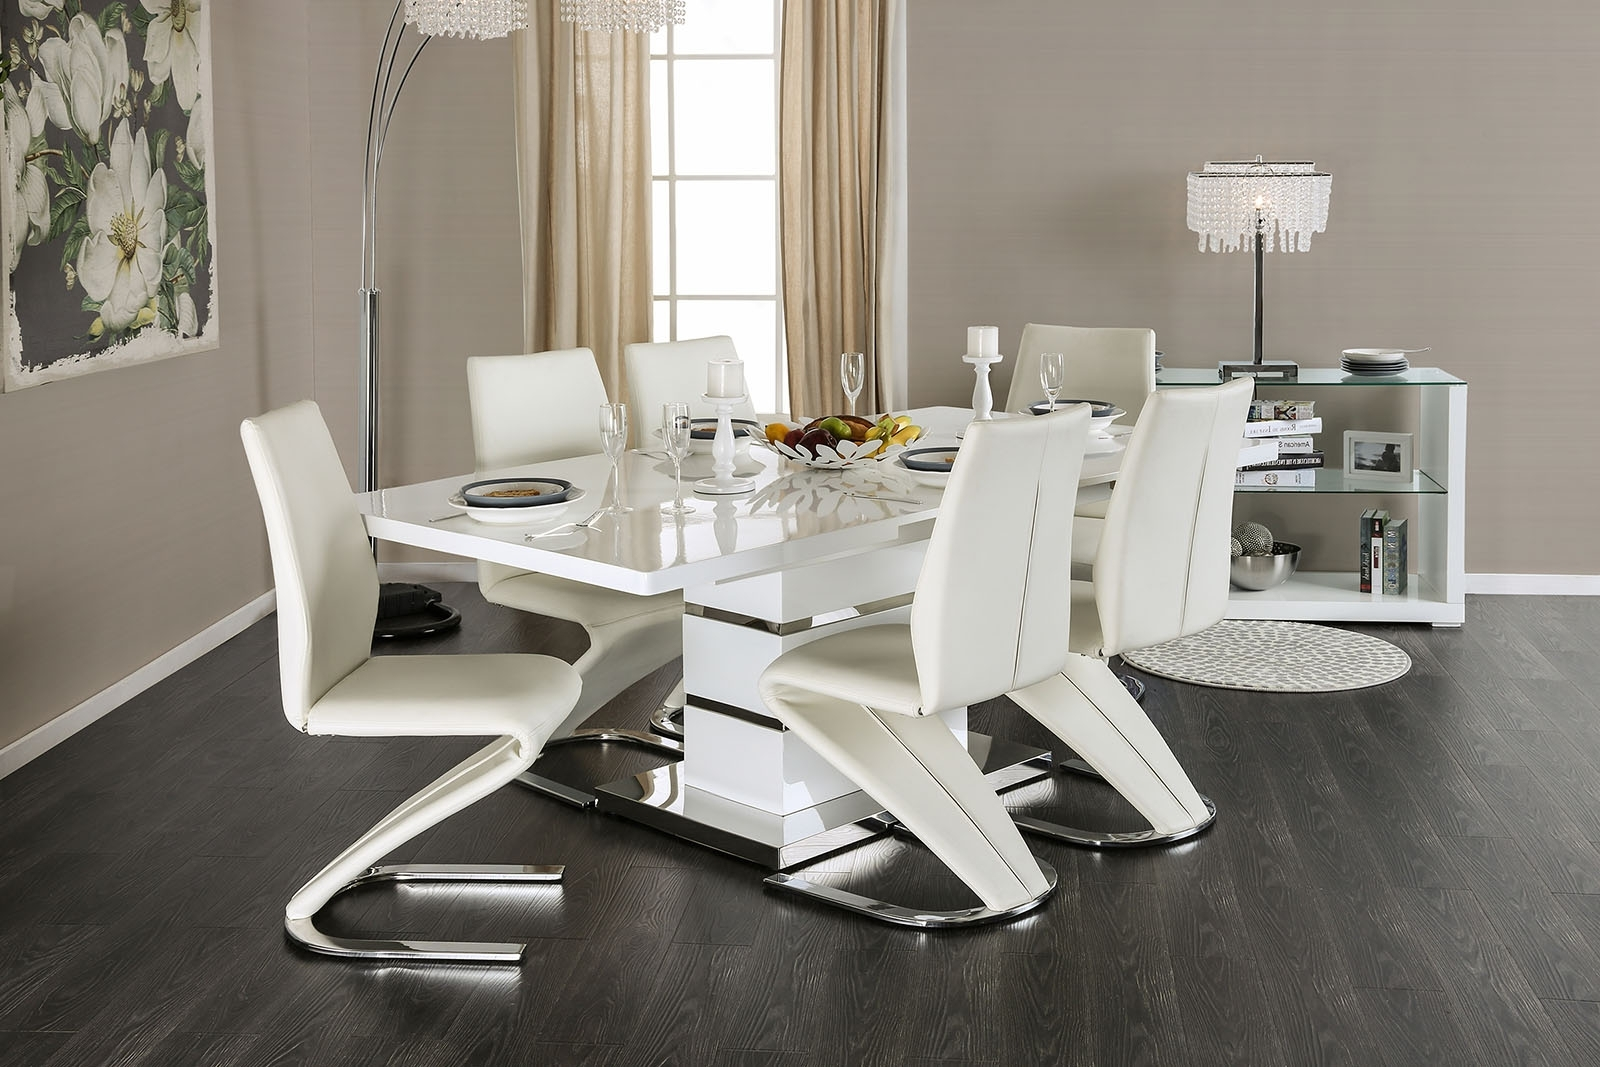 Well Liked Midvale Contemporary Style White High Gloss Lacquer Finish & Chrome For High Gloss White Dining Tables And Chairs (View 5 of 25)